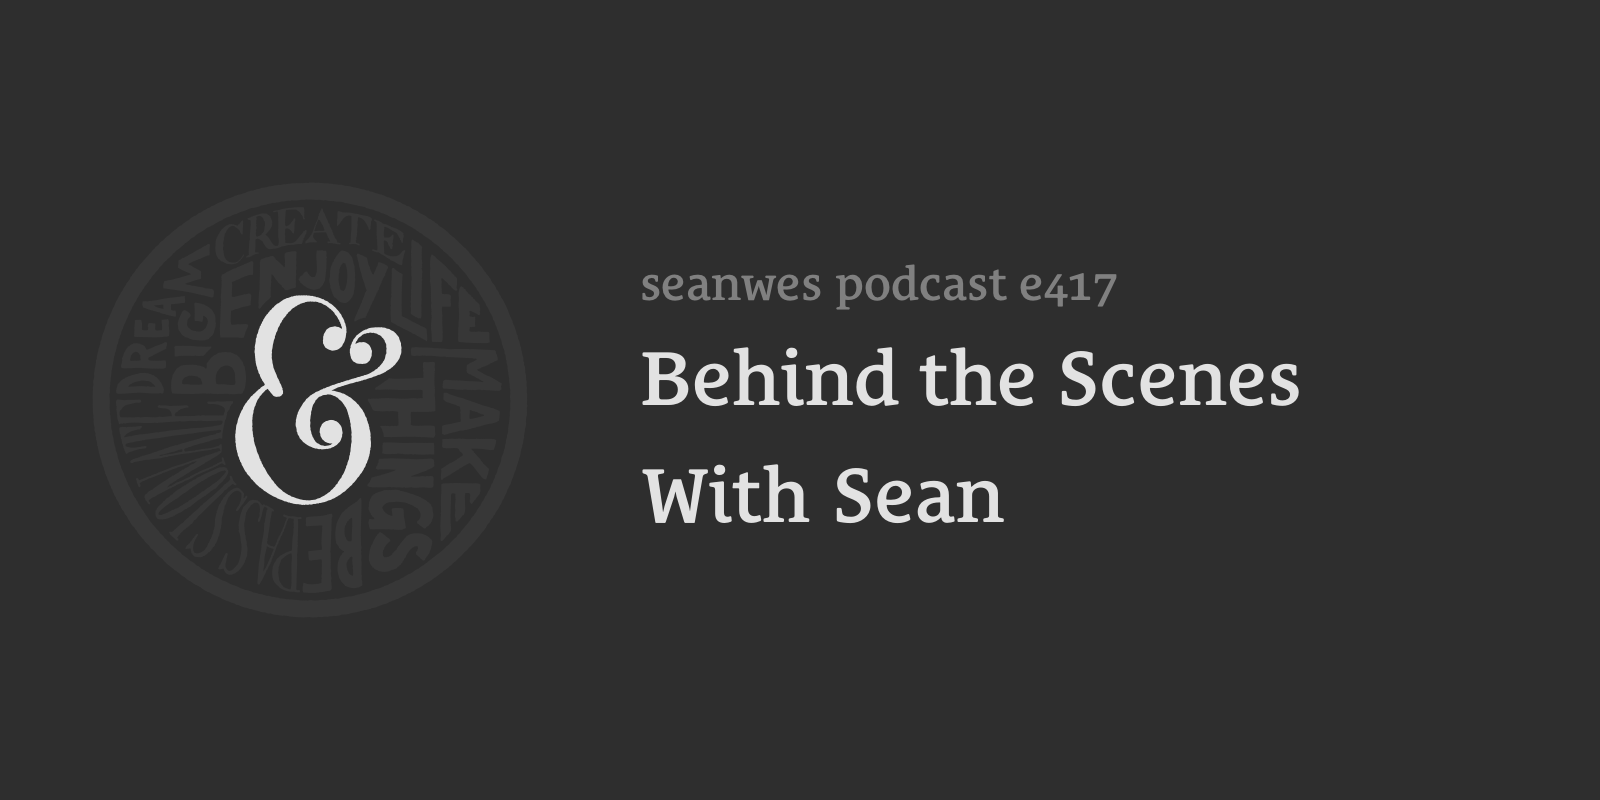 Behind the Scenes With Sean